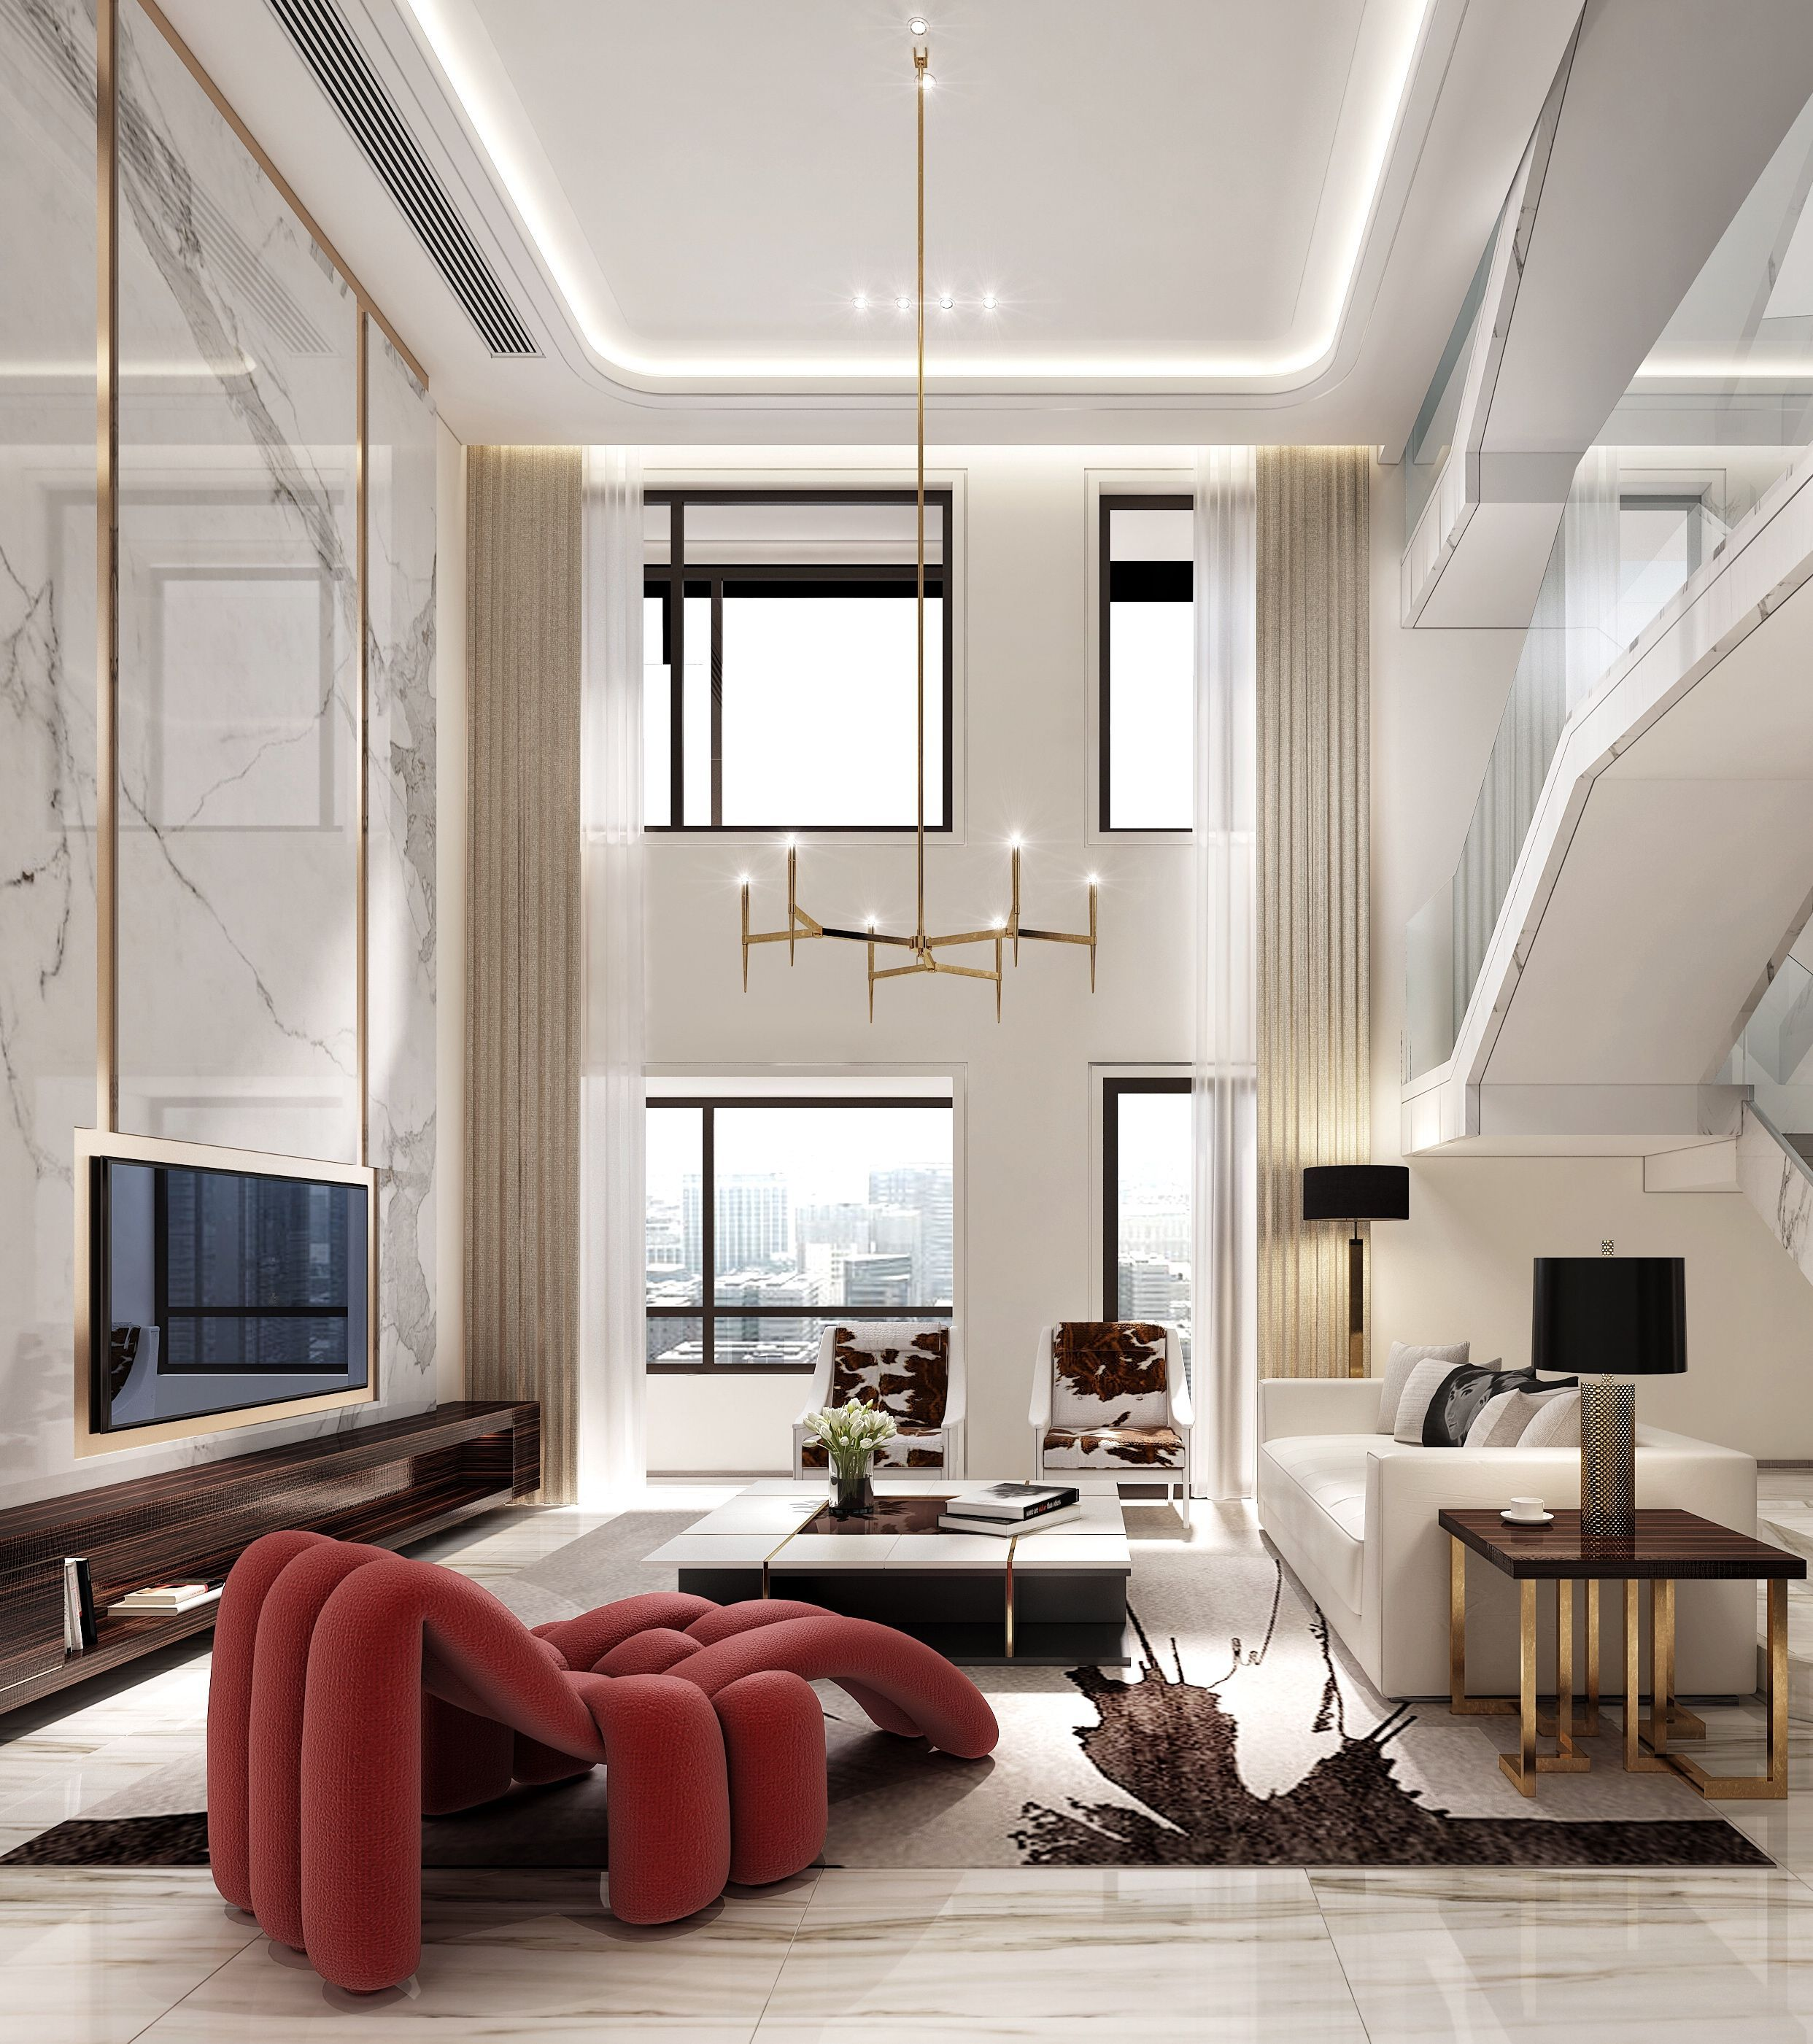 Living Room Decor Styles Luxury Interior Design Luxury Interior Living Design Interior home design living room and